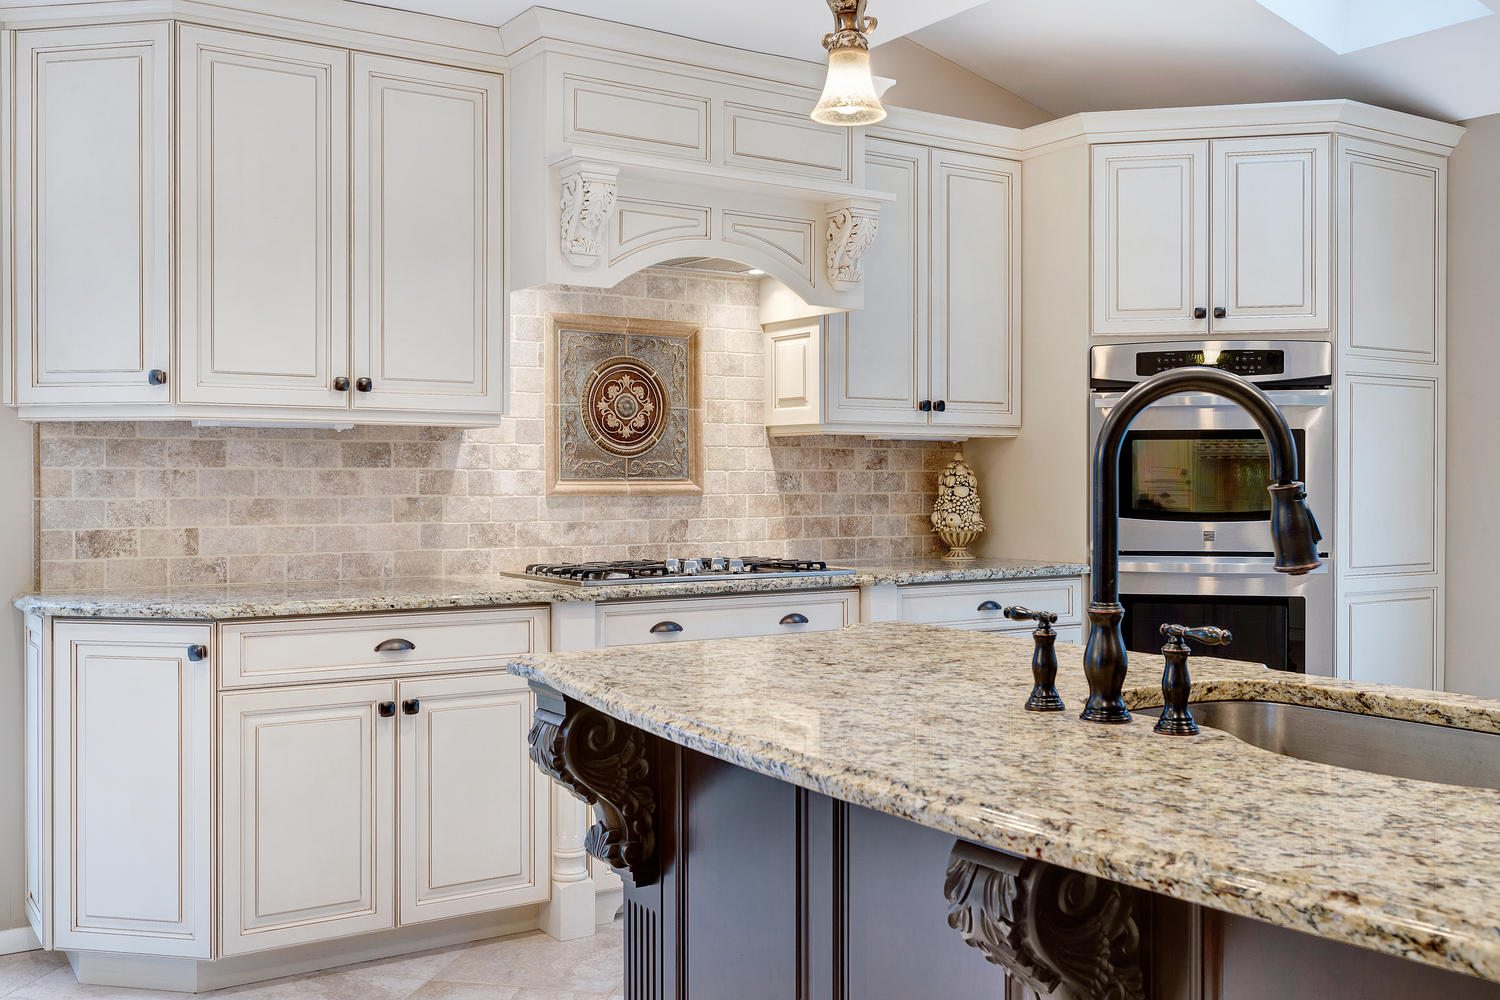 Traditional kitchen cabinets toms river new jersey by design line kitchens - Factory seconds kitchen cabinets ...